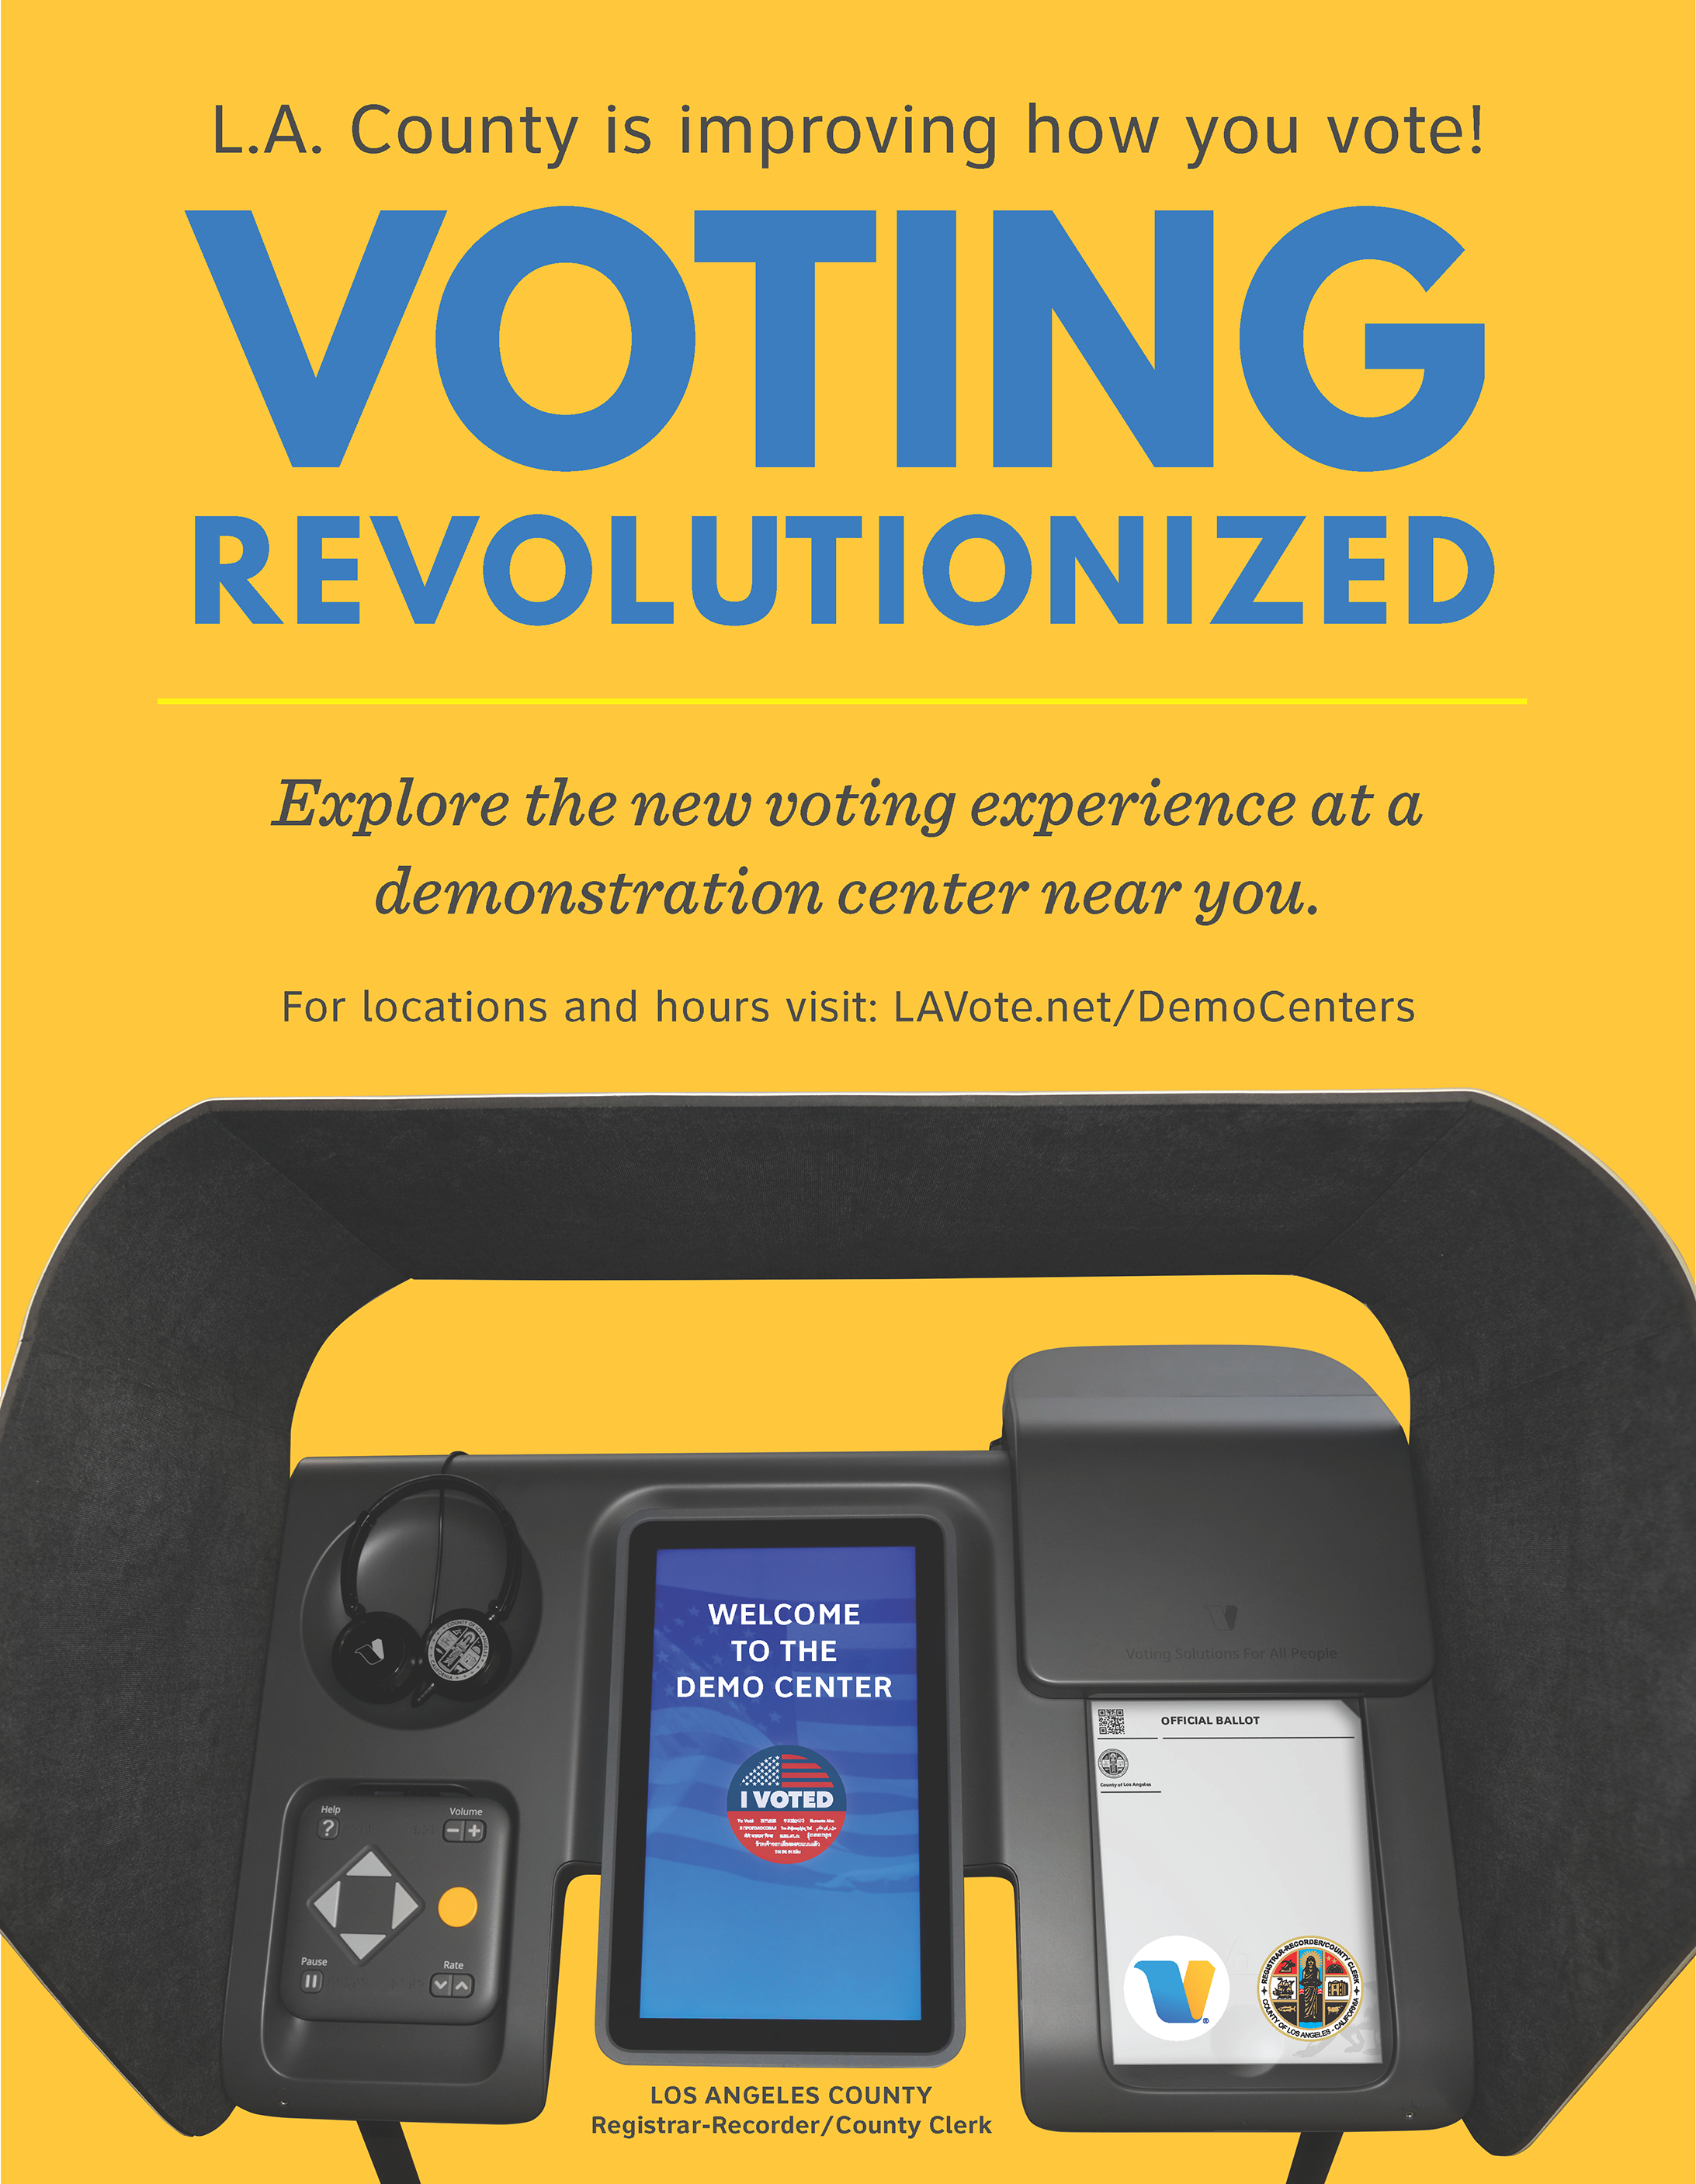 Banner Title - L.A. County is improving how you vote! Voting Revolutionized. Explore the new voting experience at a demonstration center near you. For locations and hours visit: LAVote.net/DemoCenters. Provided by Los Angeles County Registrar-Recorder/County Clerkx